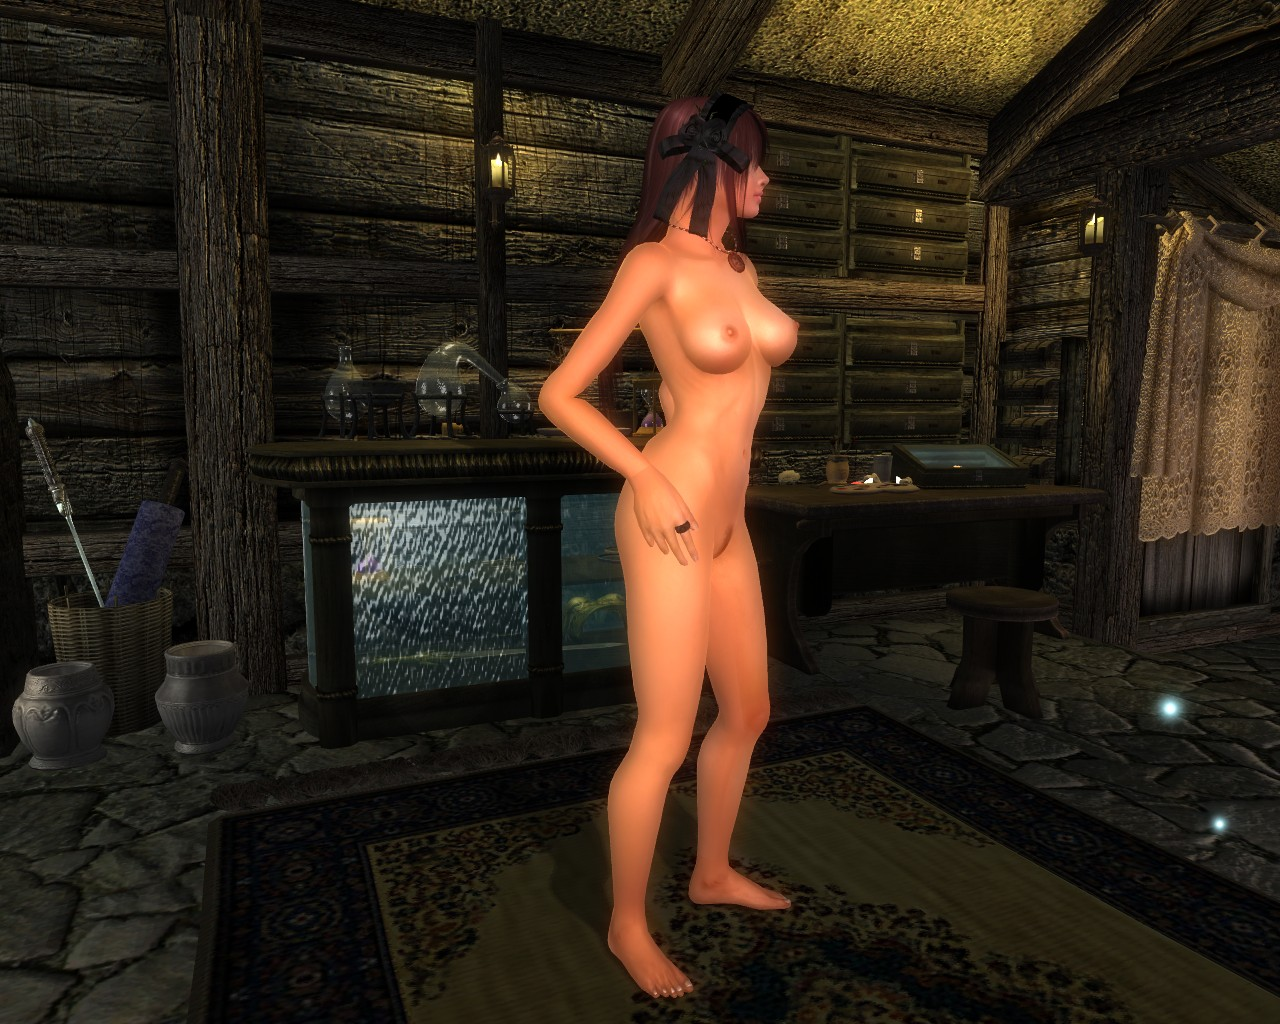 Oblivion nude patch pictures sexy pic